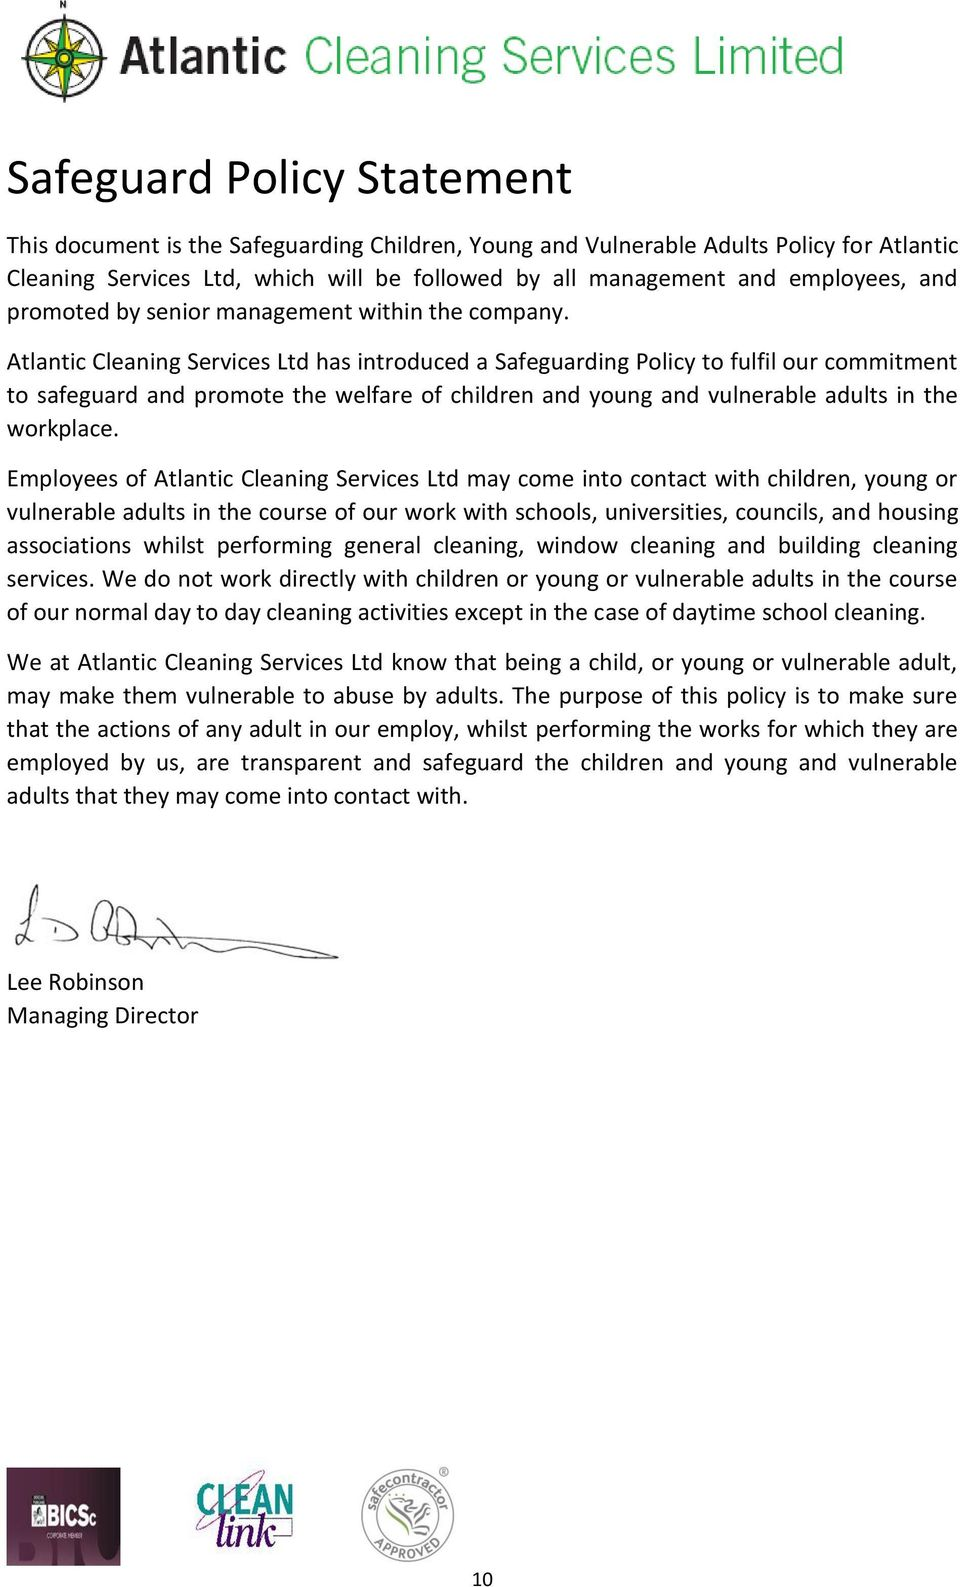 Atlantic Cleaning Services Ltd has introduced a Safeguarding Policy to fulfil our commitment to safeguard and promote the welfare of children and young and vulnerable adults in the workplace.